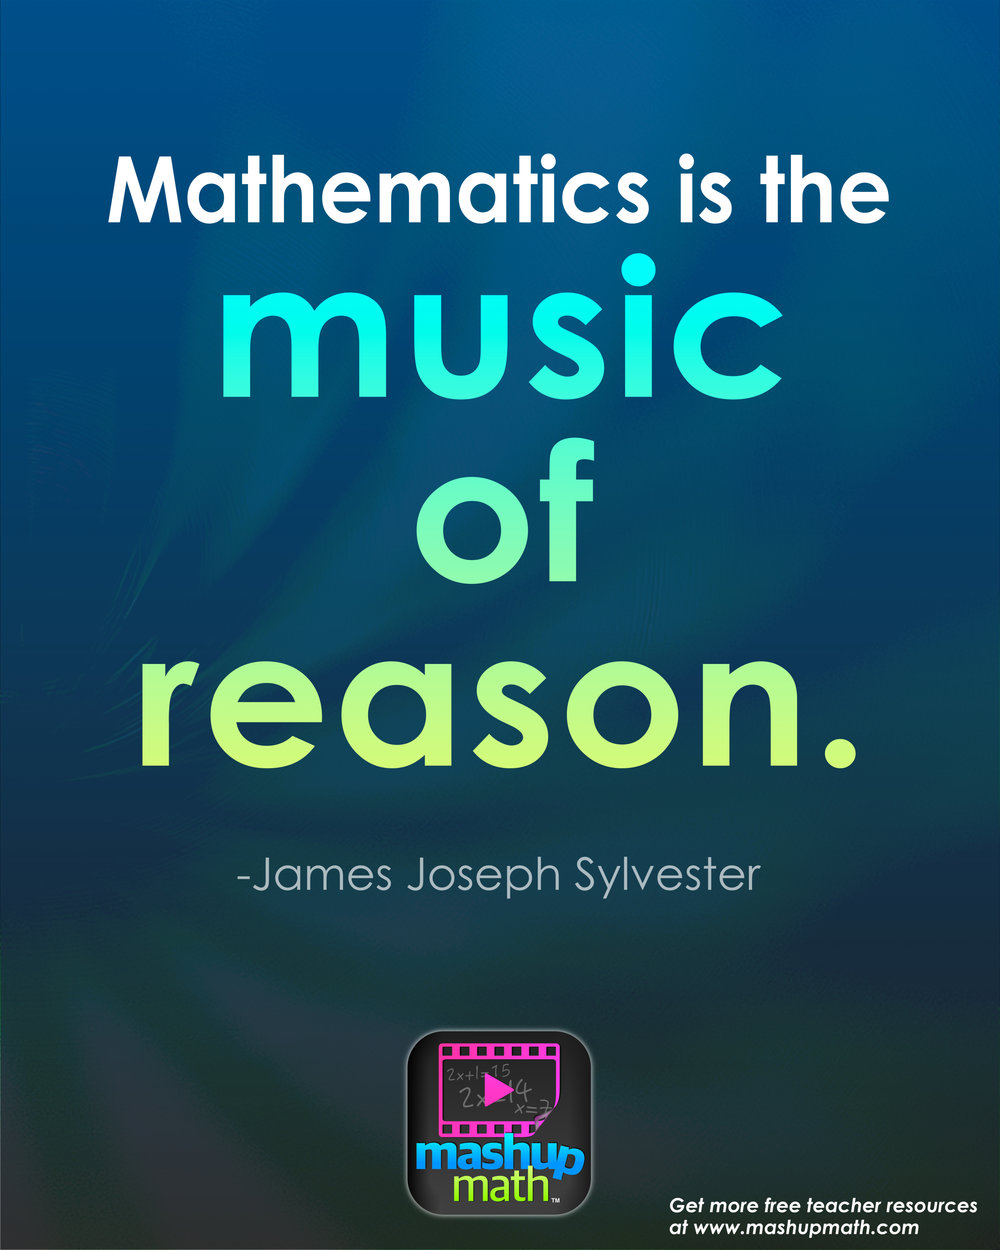 Quotes About Hating Math: 17 Groovy Math Quotes To Post In Your Classroom